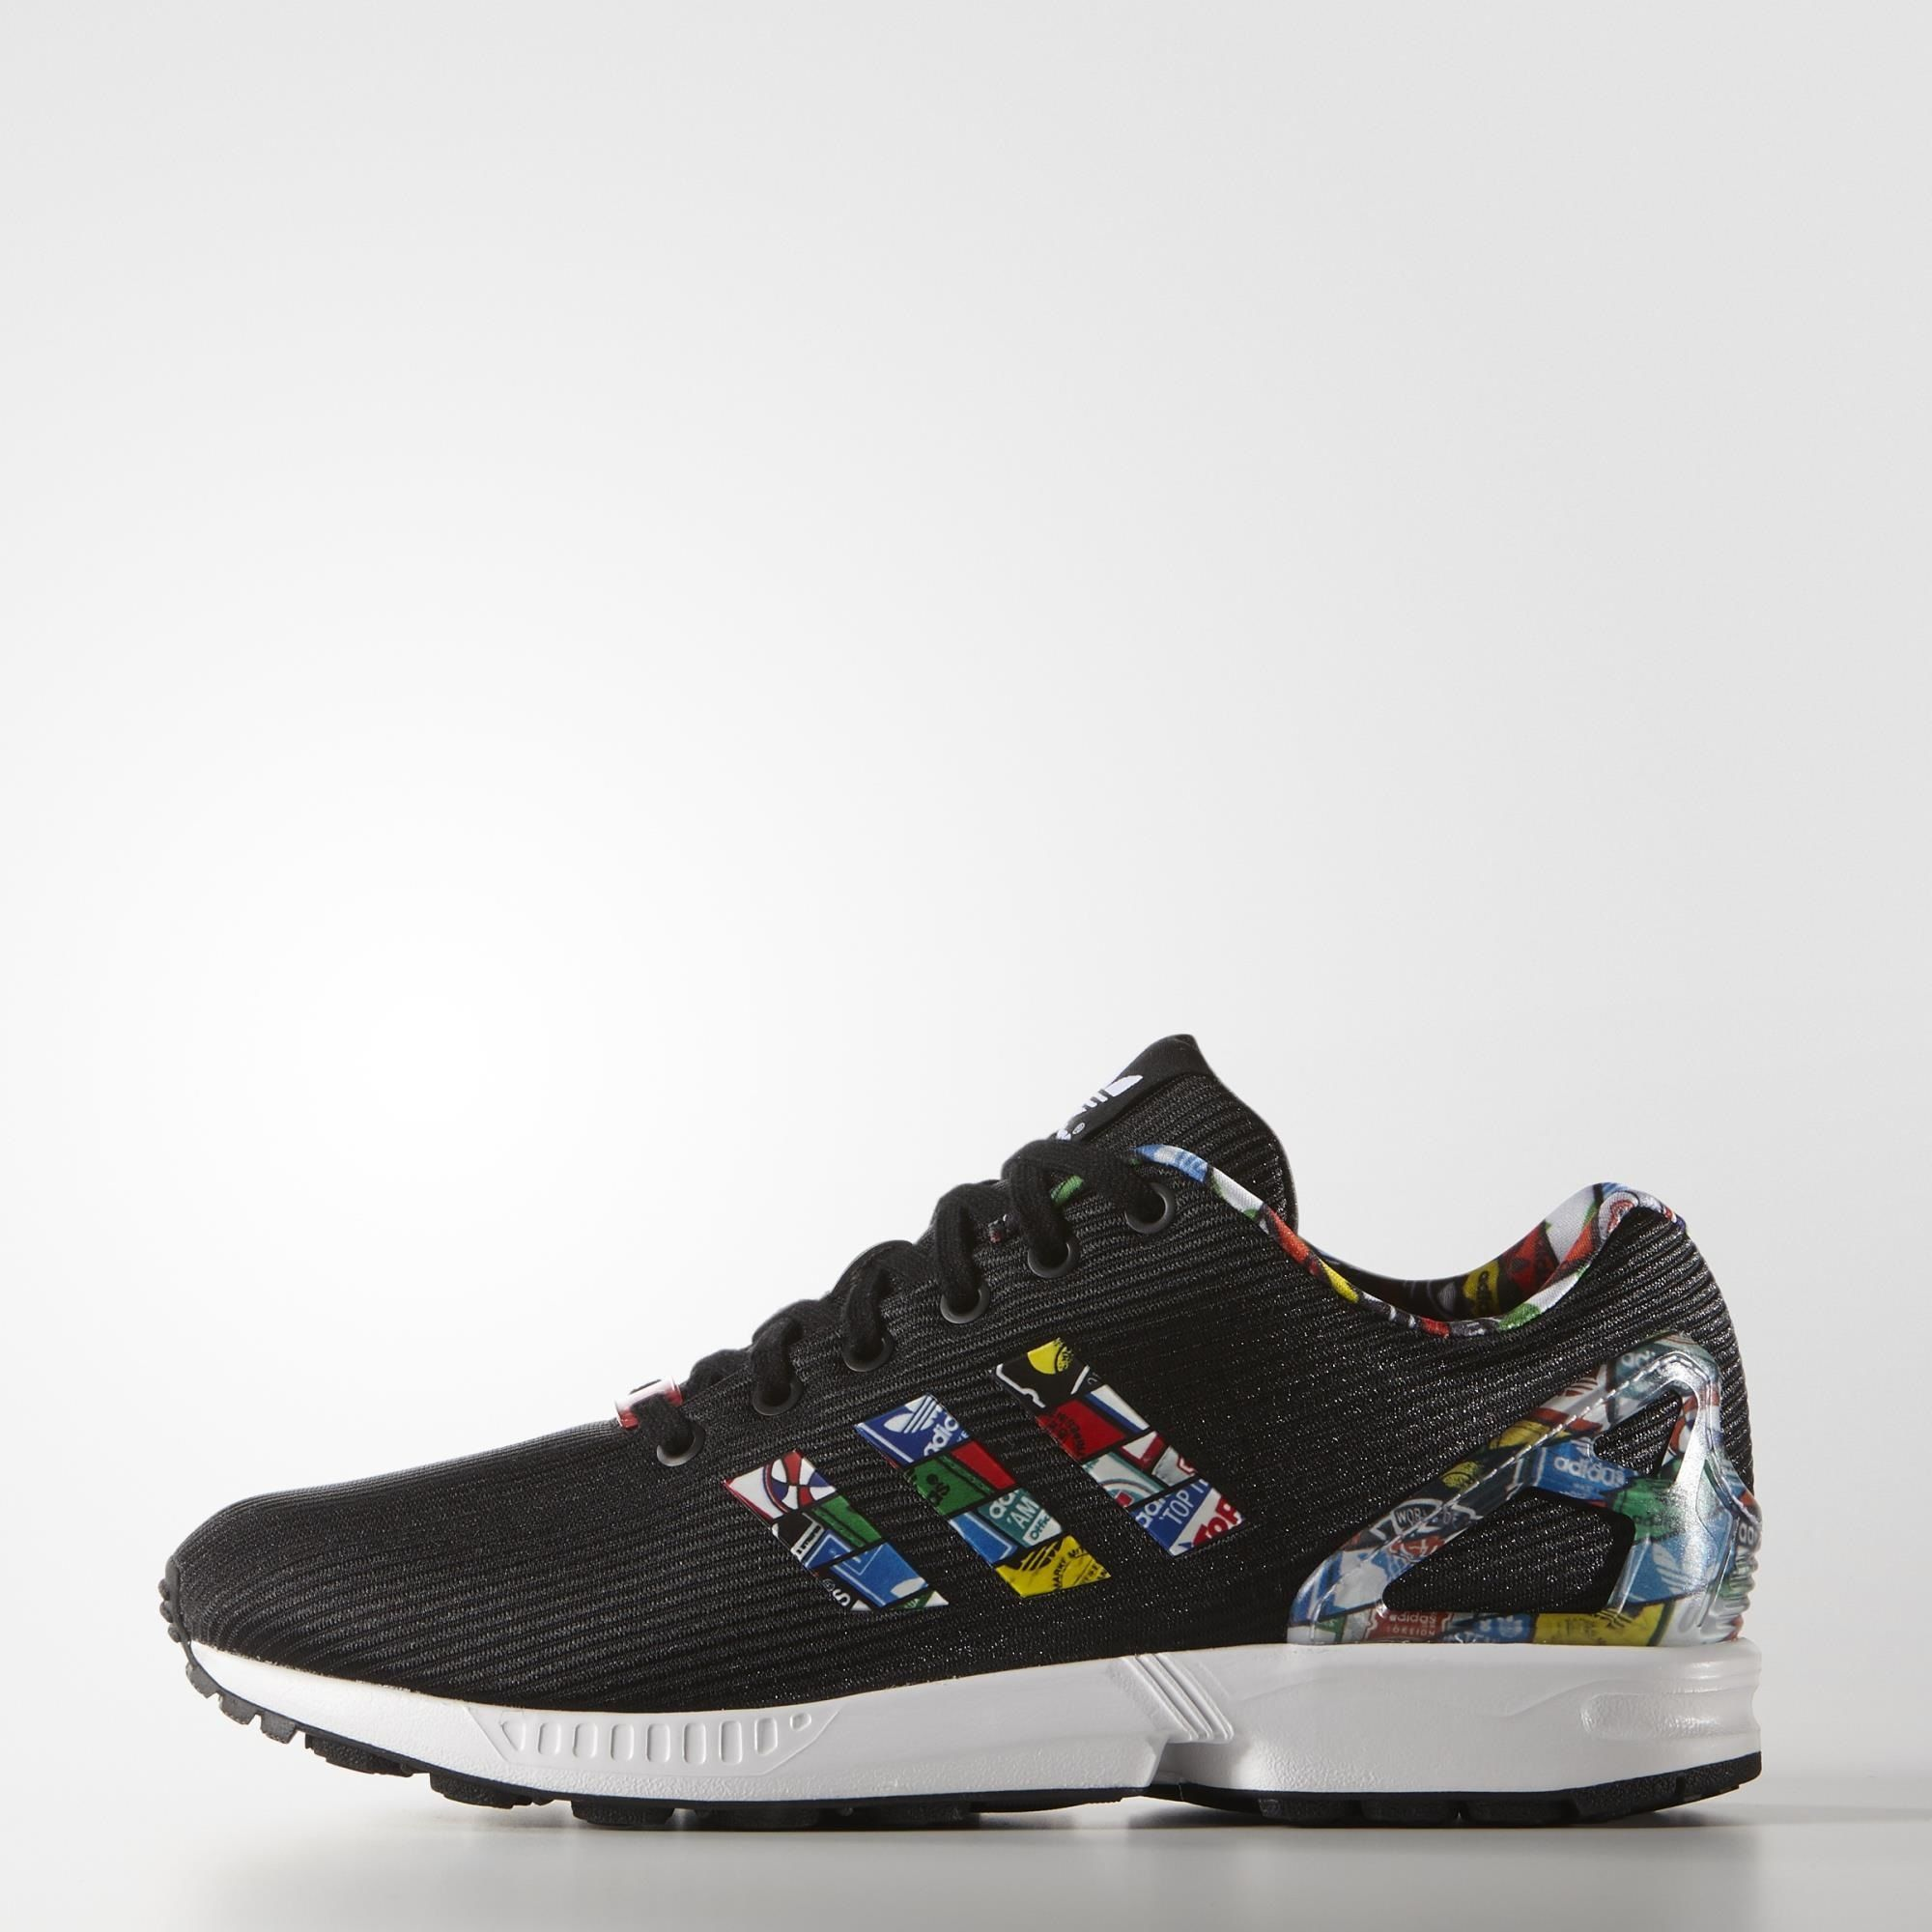 adidas zx flux color negro